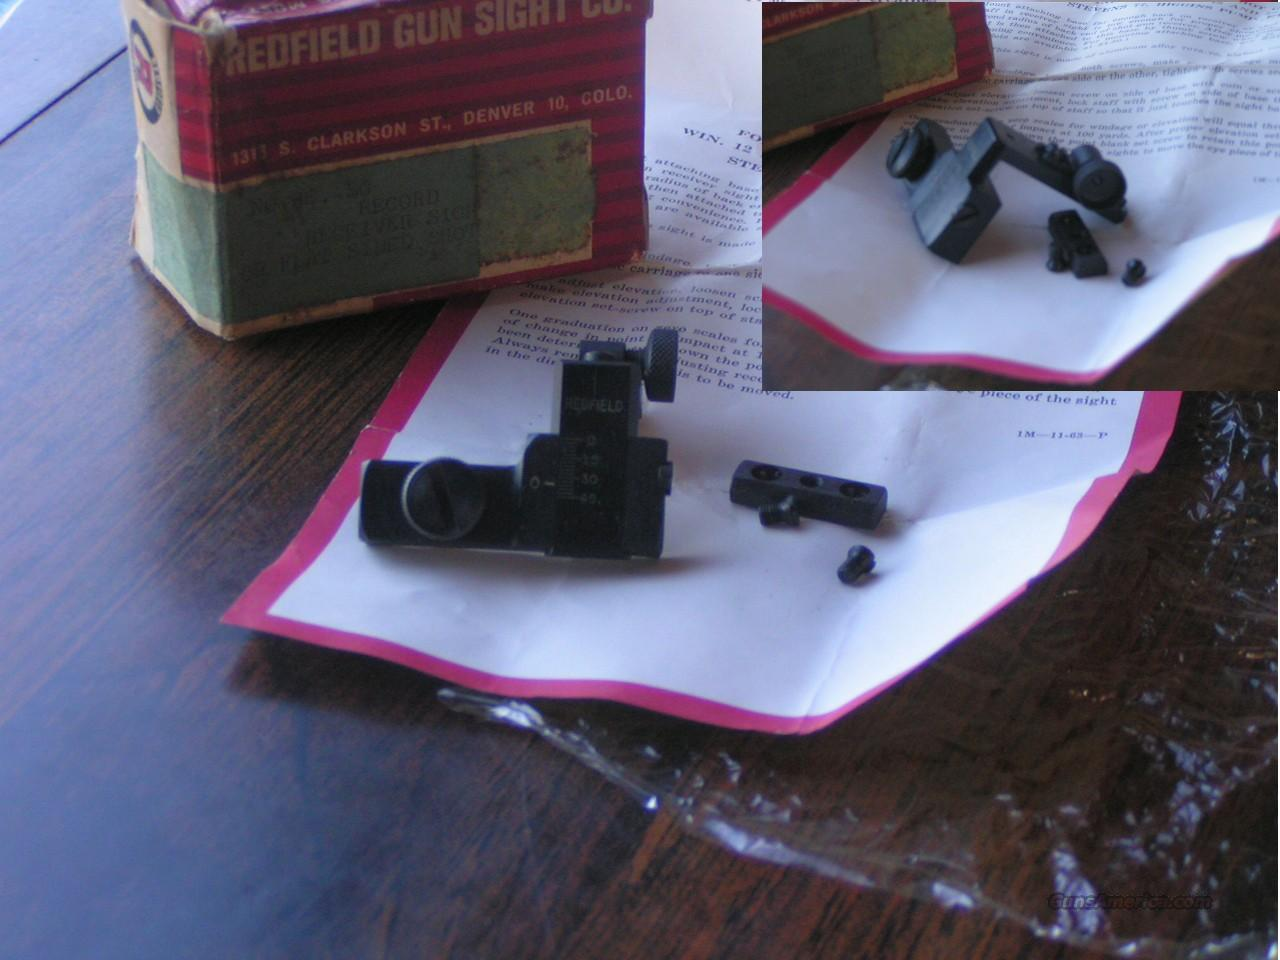 REDFIELD RECIEVER SIGHT RE-SG  Non-Guns > Iron/Metal/Peep Sights